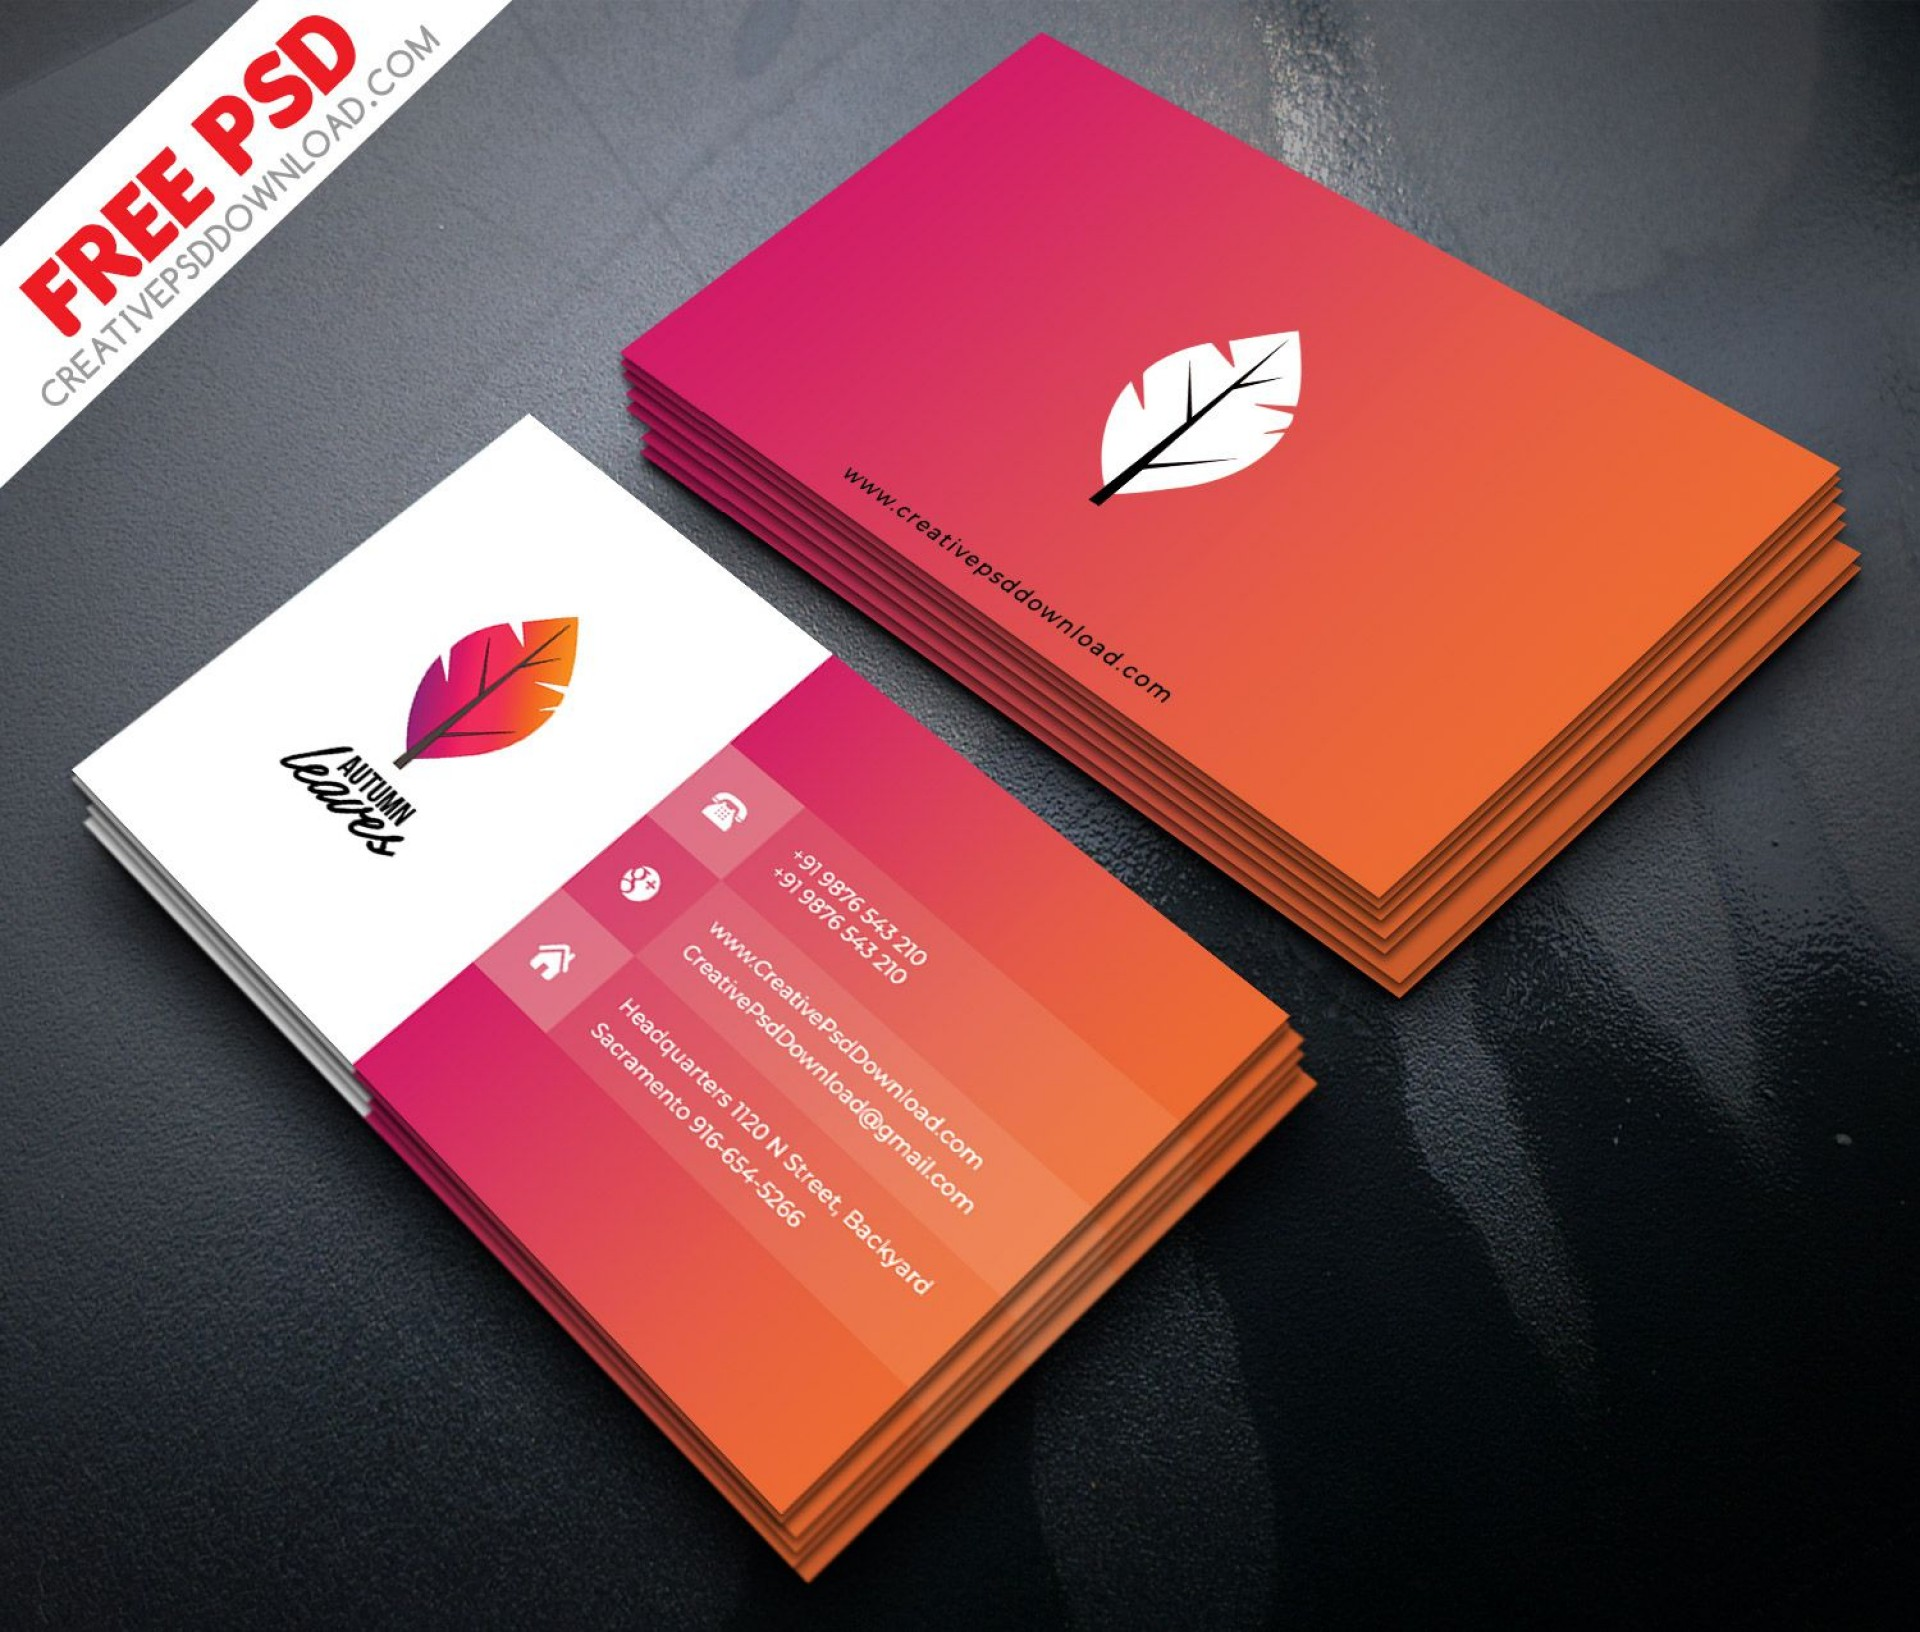 010 Wonderful Free Blank Busines Card Template Photoshop High Def  Download Psd1920